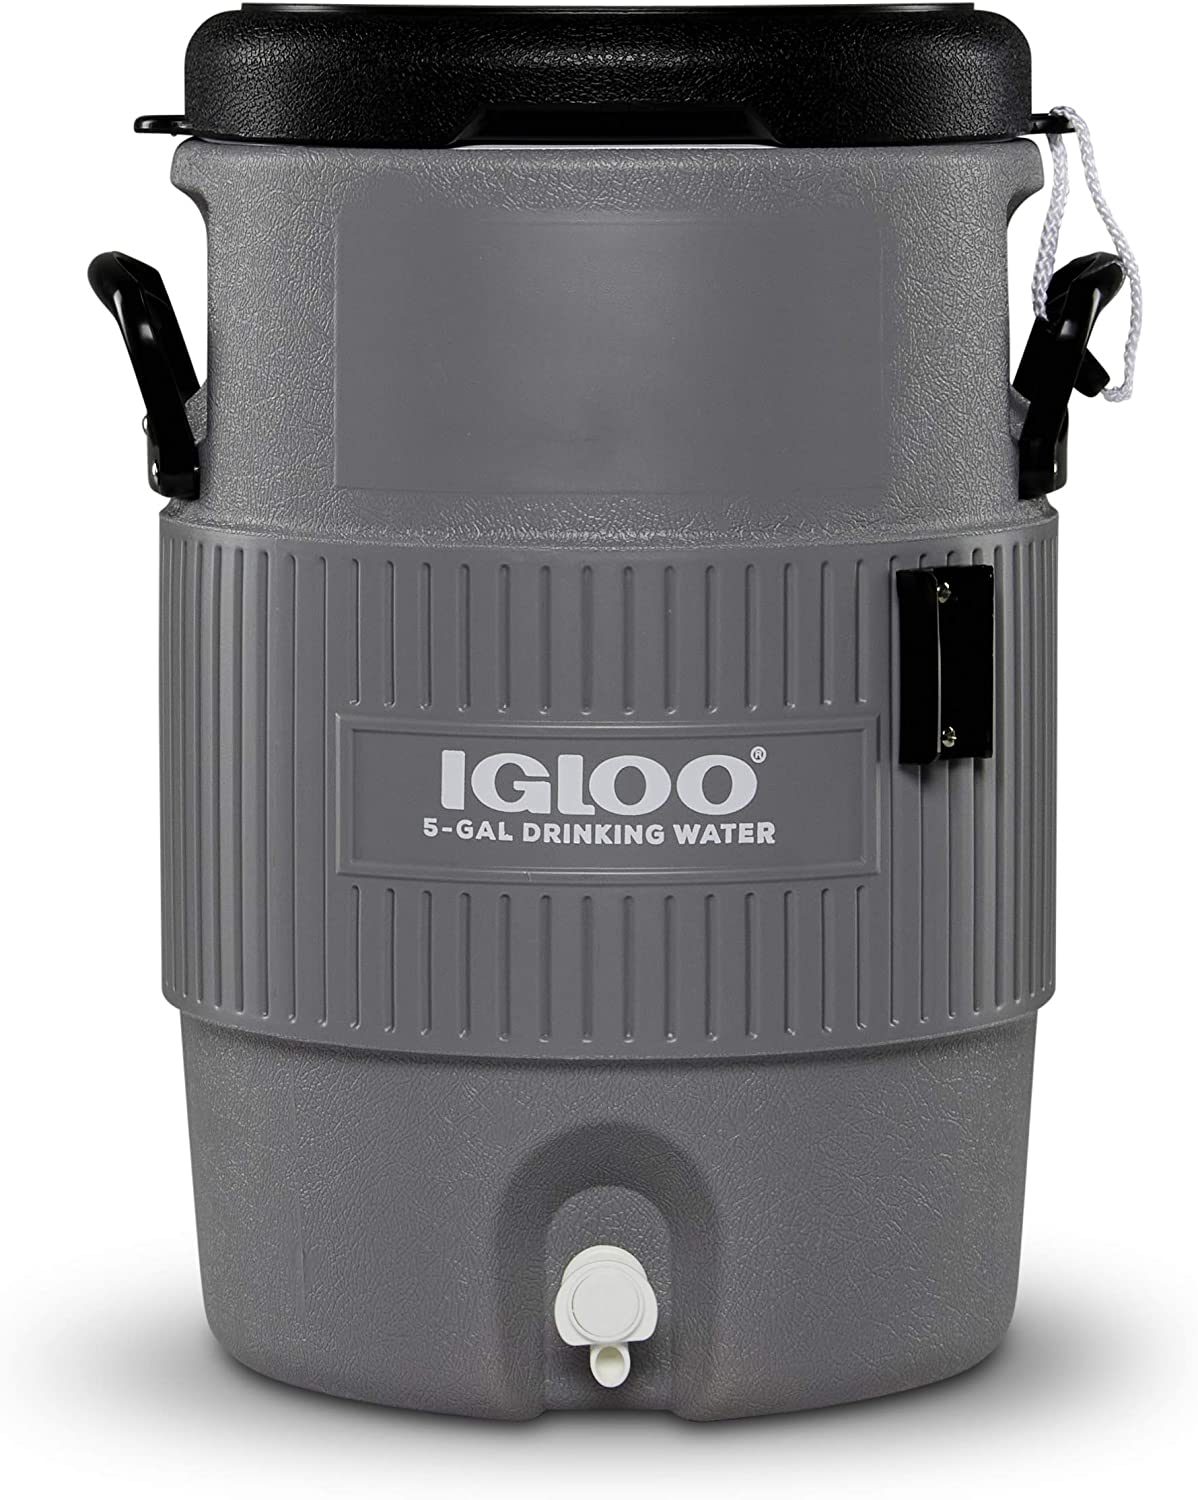 Igloo 5 Gallon Portable Sports Cooler Water Beverage Dispenser with Flat Seat Lid, Gray, 4 Qt